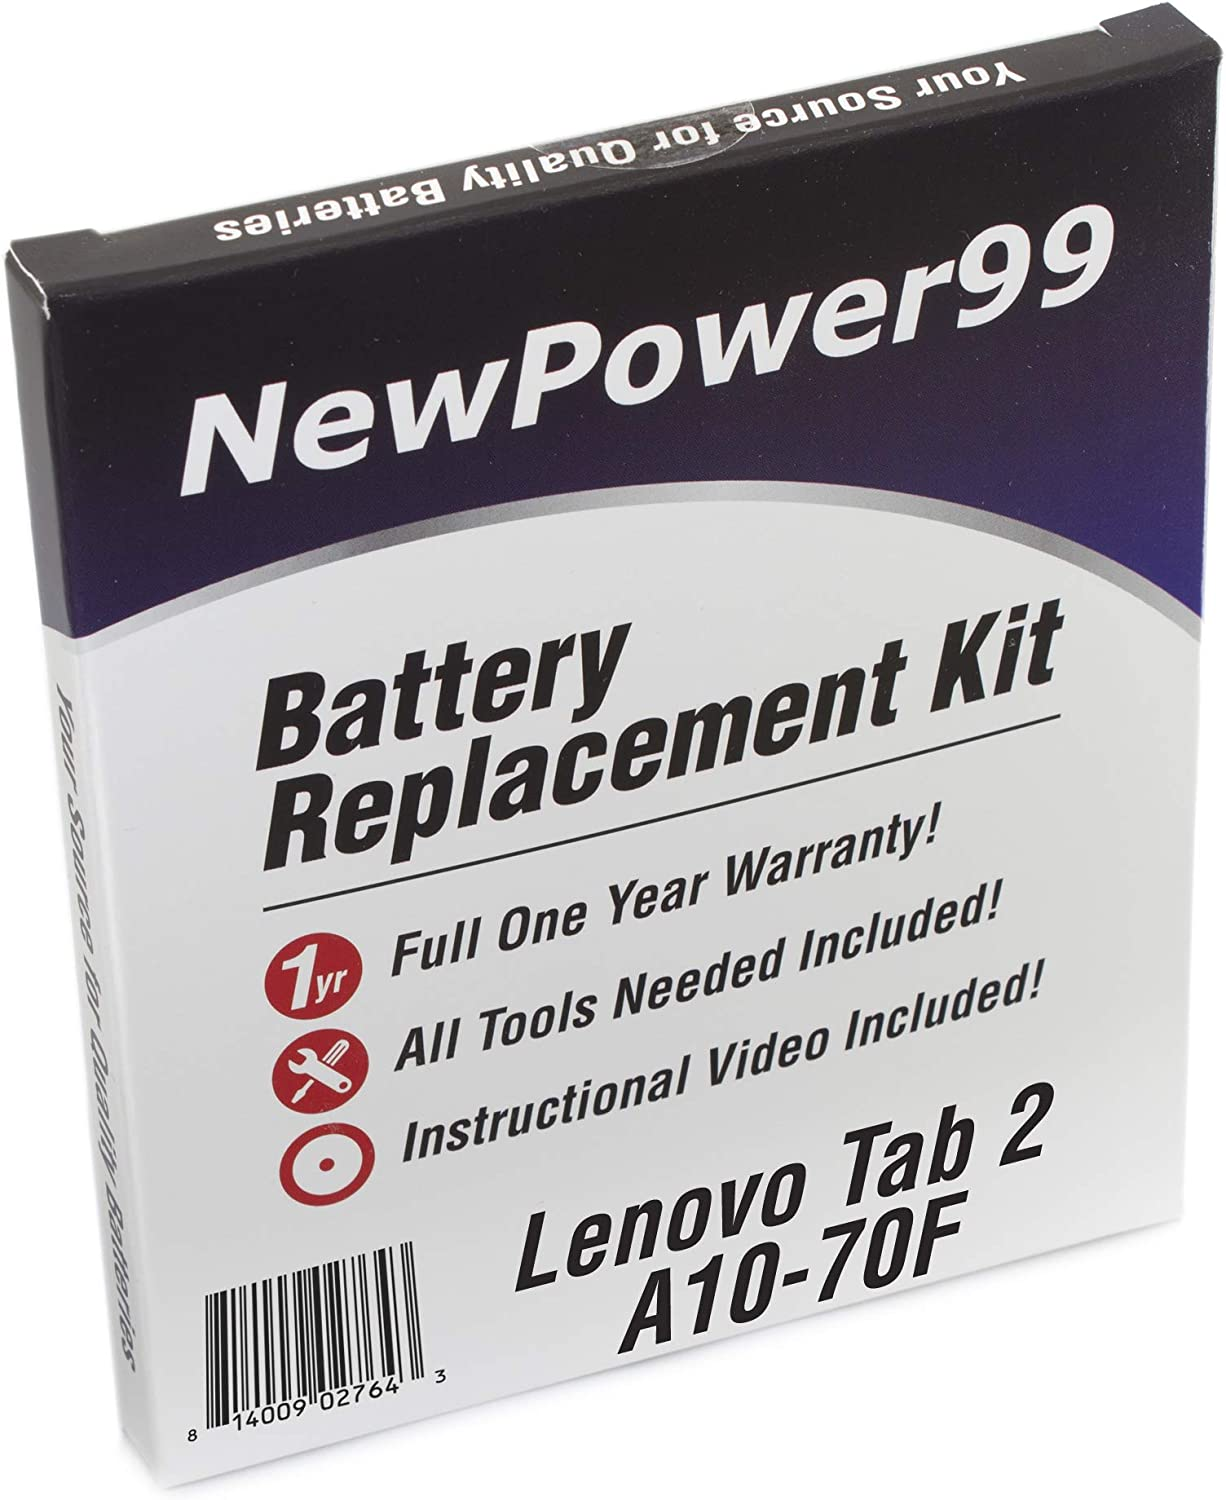 Battery Kit for Lenovo Tab 2 A10-70F with Tools, How-to Video, Battery from NewPower99